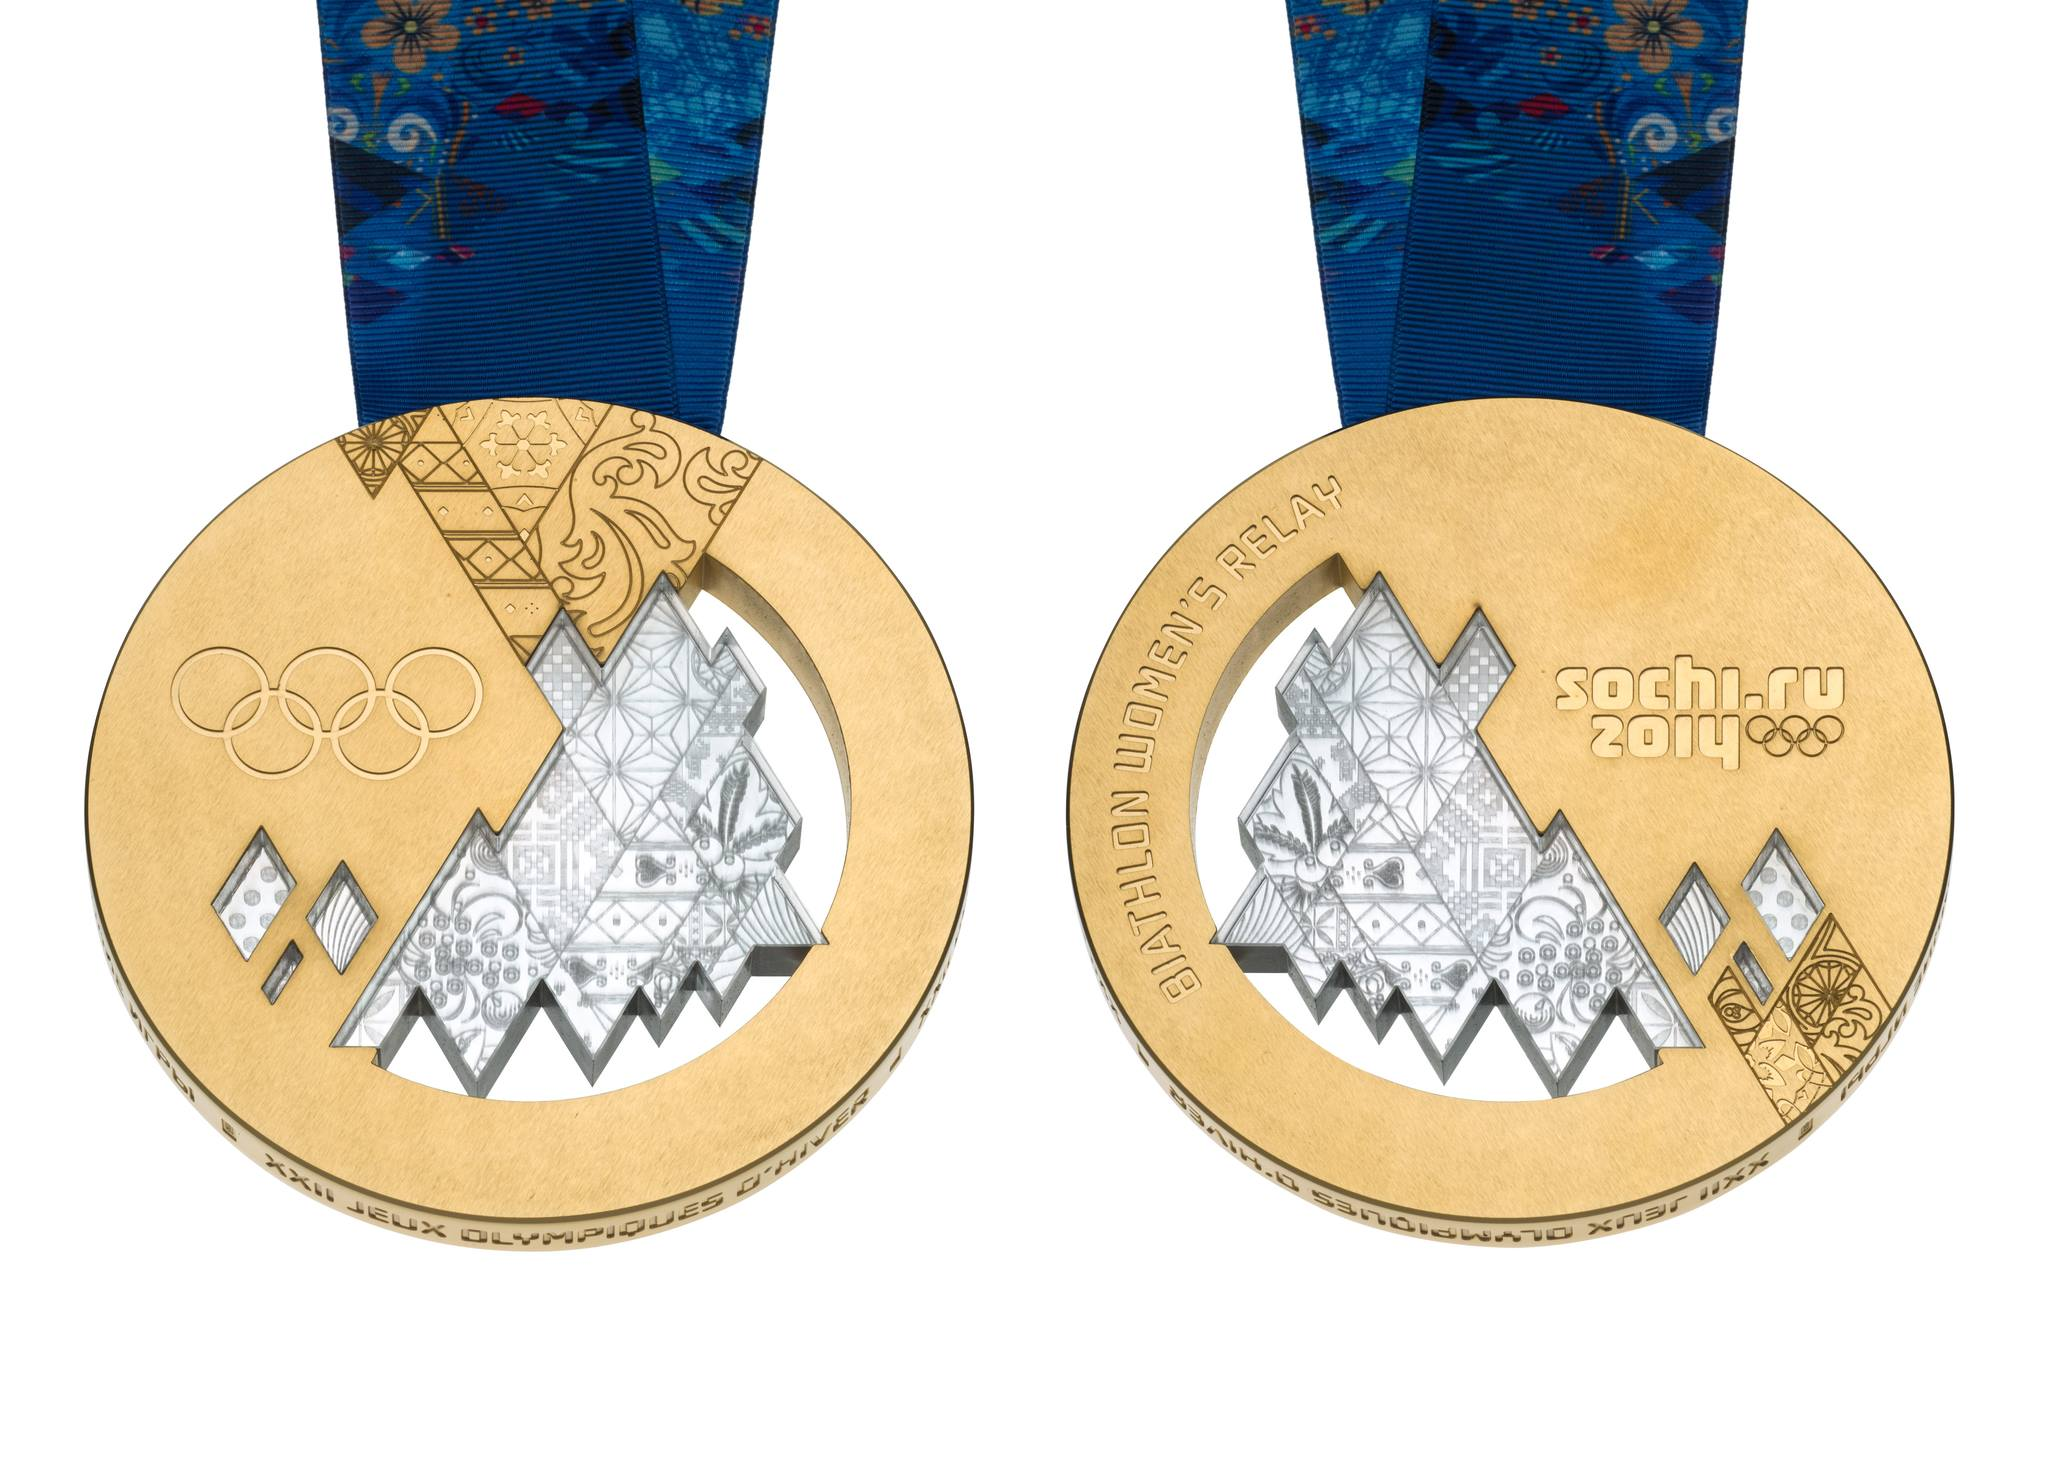 2014 Winter Olympics: Sochi Gold Medals Unveiled (Photo)